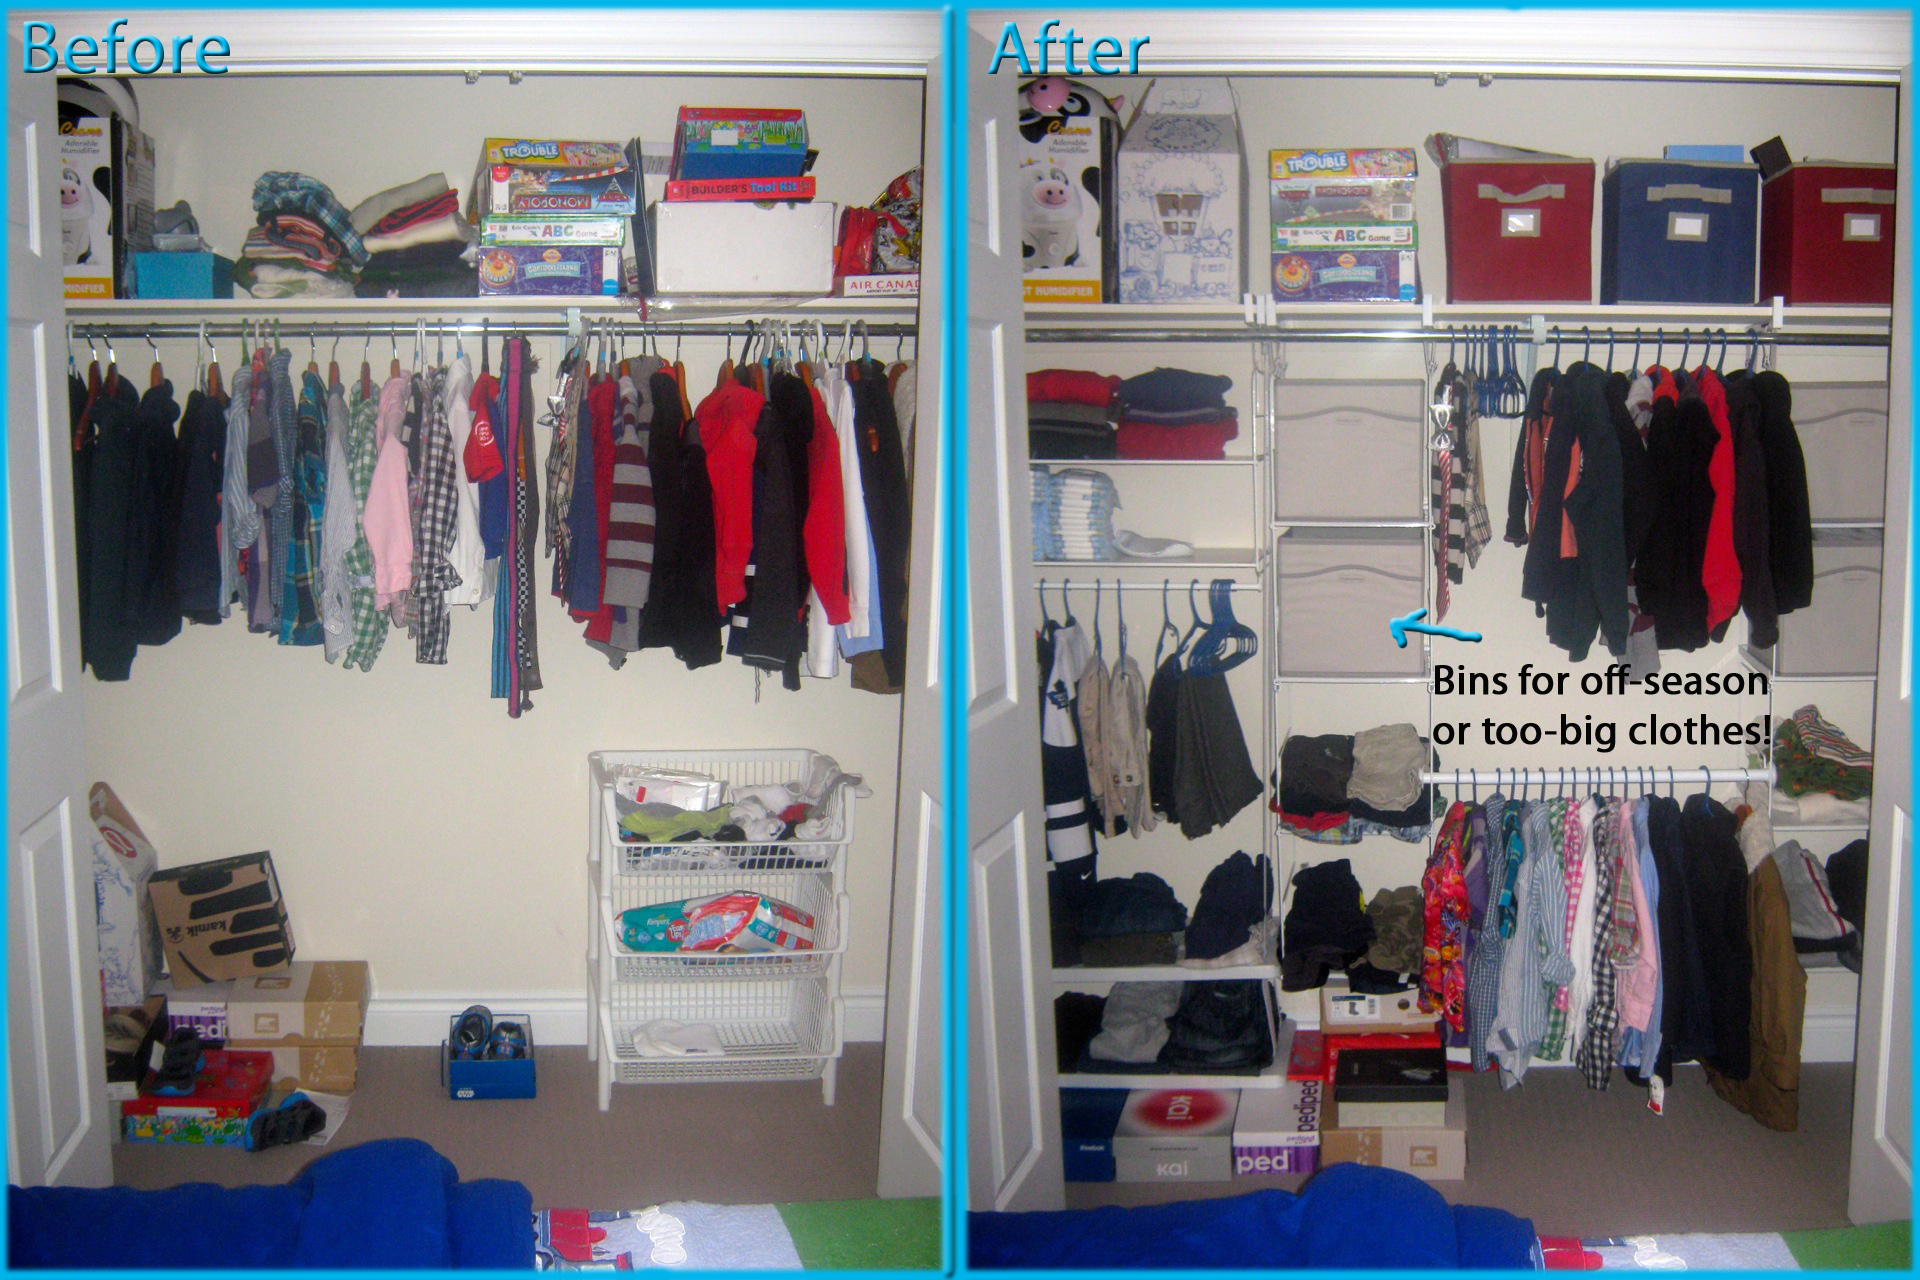 design martha luxury home racks ideas of roselawnlutheran stewart picture simple closet with closets image system depot